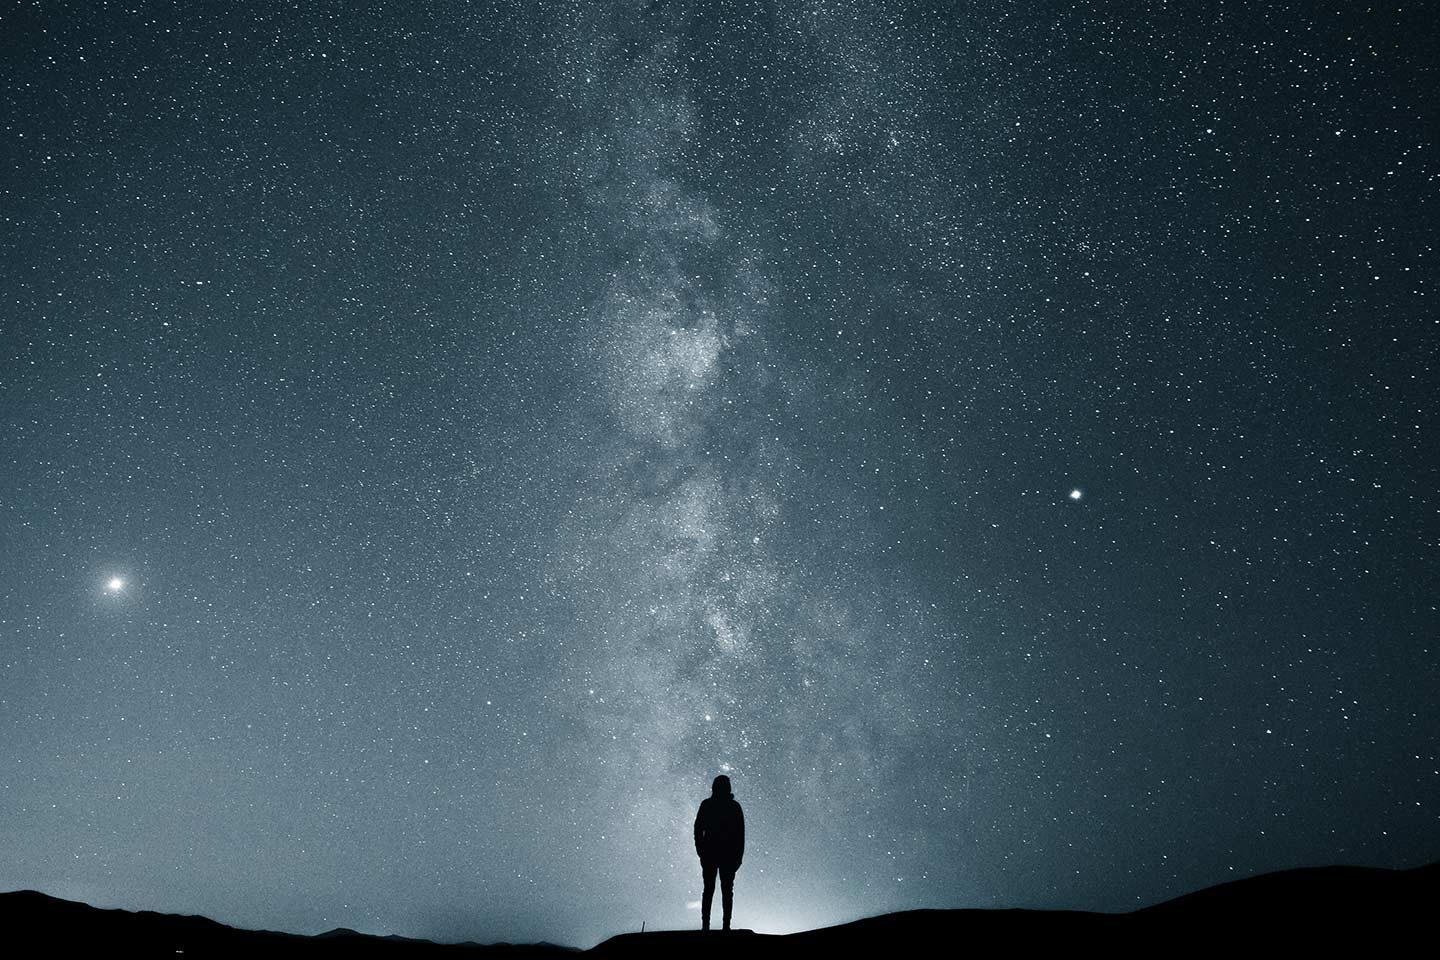 A silhouette of a man looking out to the vastness of the Milky Way on a clear night when the sky is lit up with stars. If you're looking for the best astrophotography camera low light performance is very important.